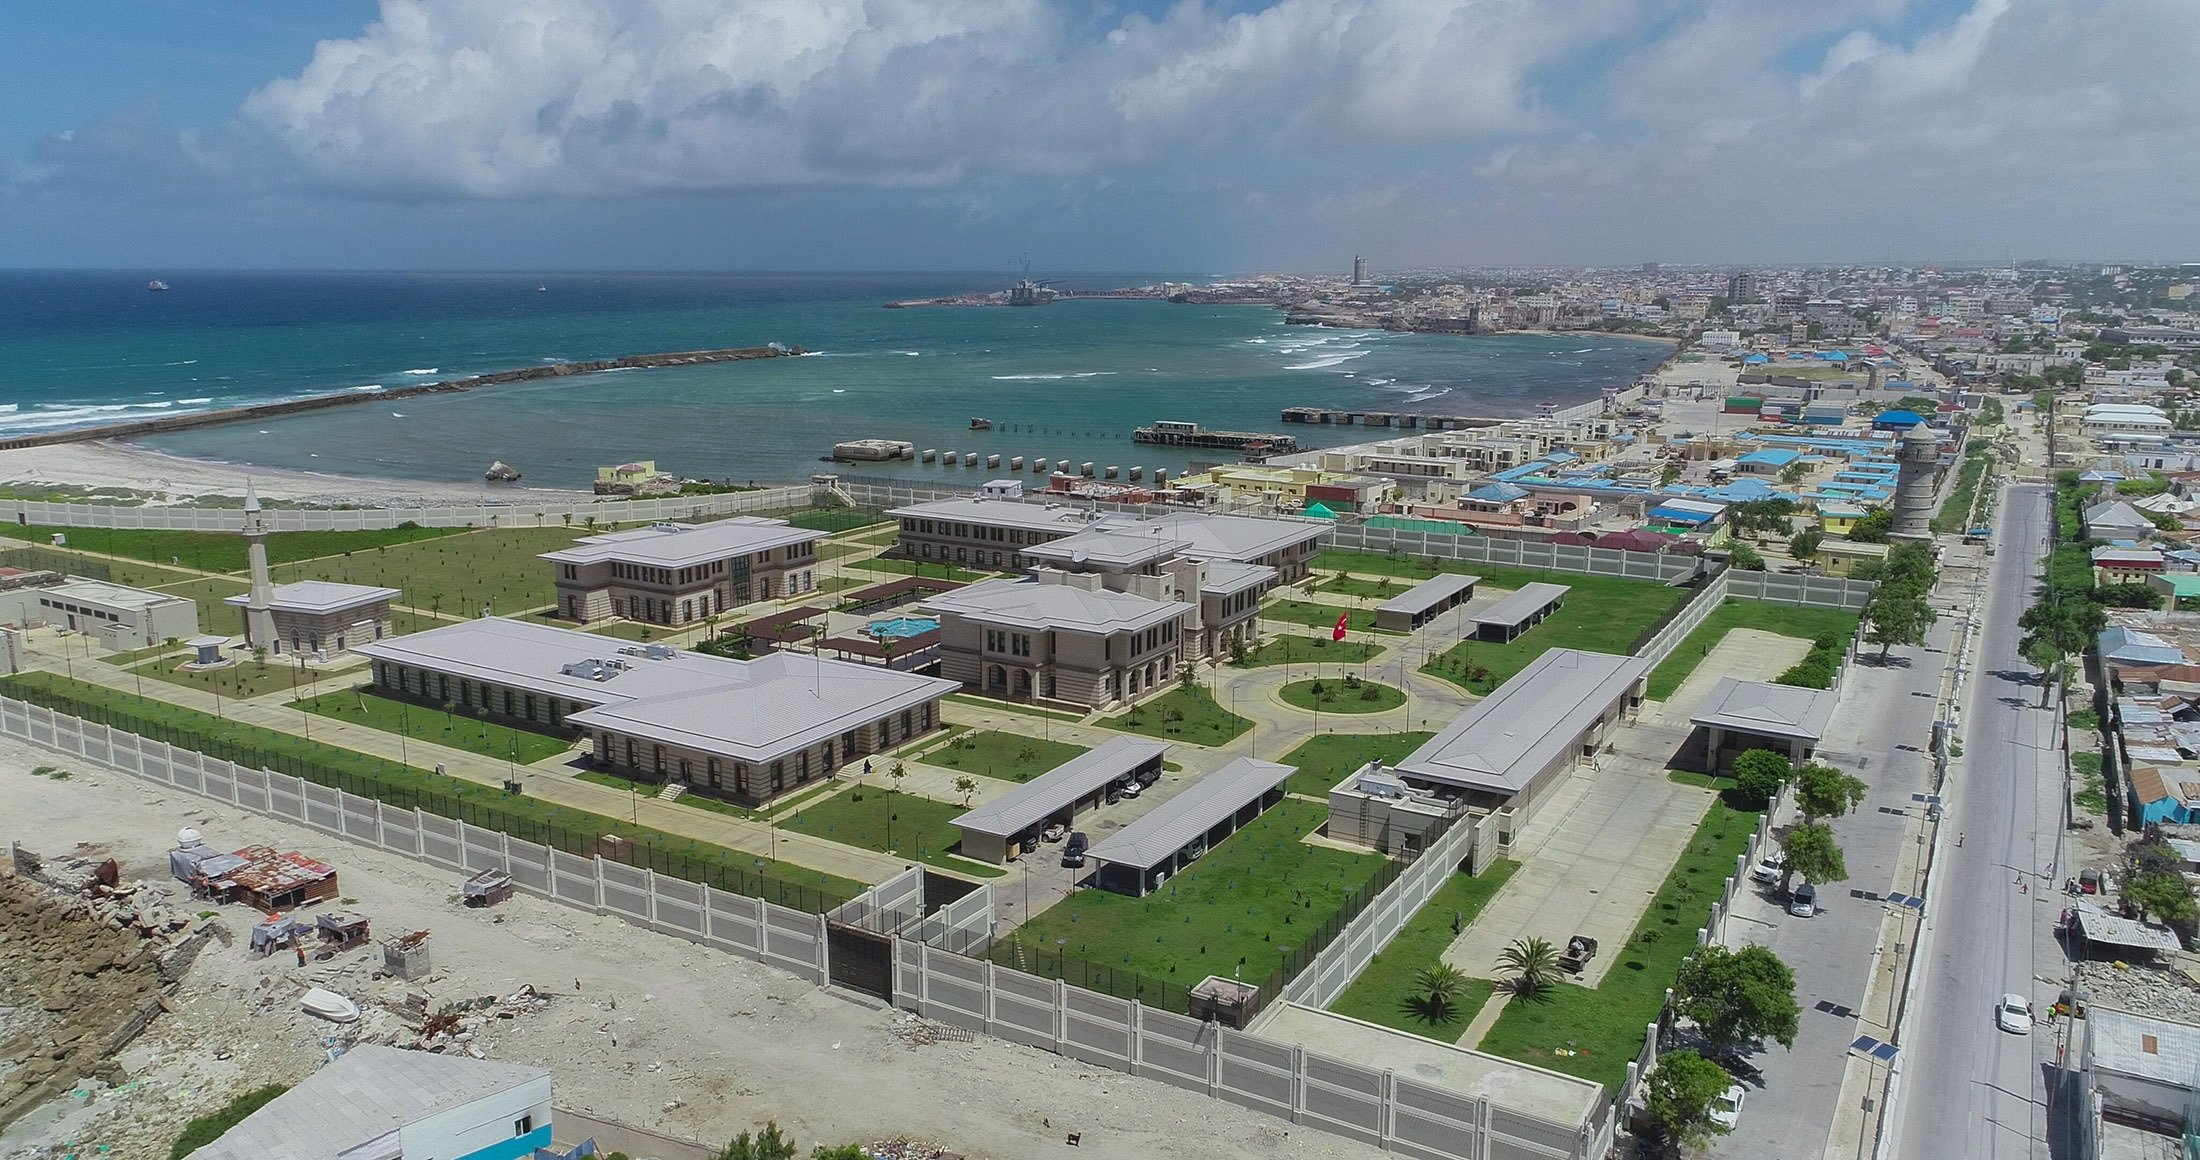 The Turkish Embassy Compound in Mogadishu, built on an 80-decare plot of land, is the largest Turkish Embassy in the world, in Mogadishu, Somalia, June 30, 2018. (Shuttterstock Photo)